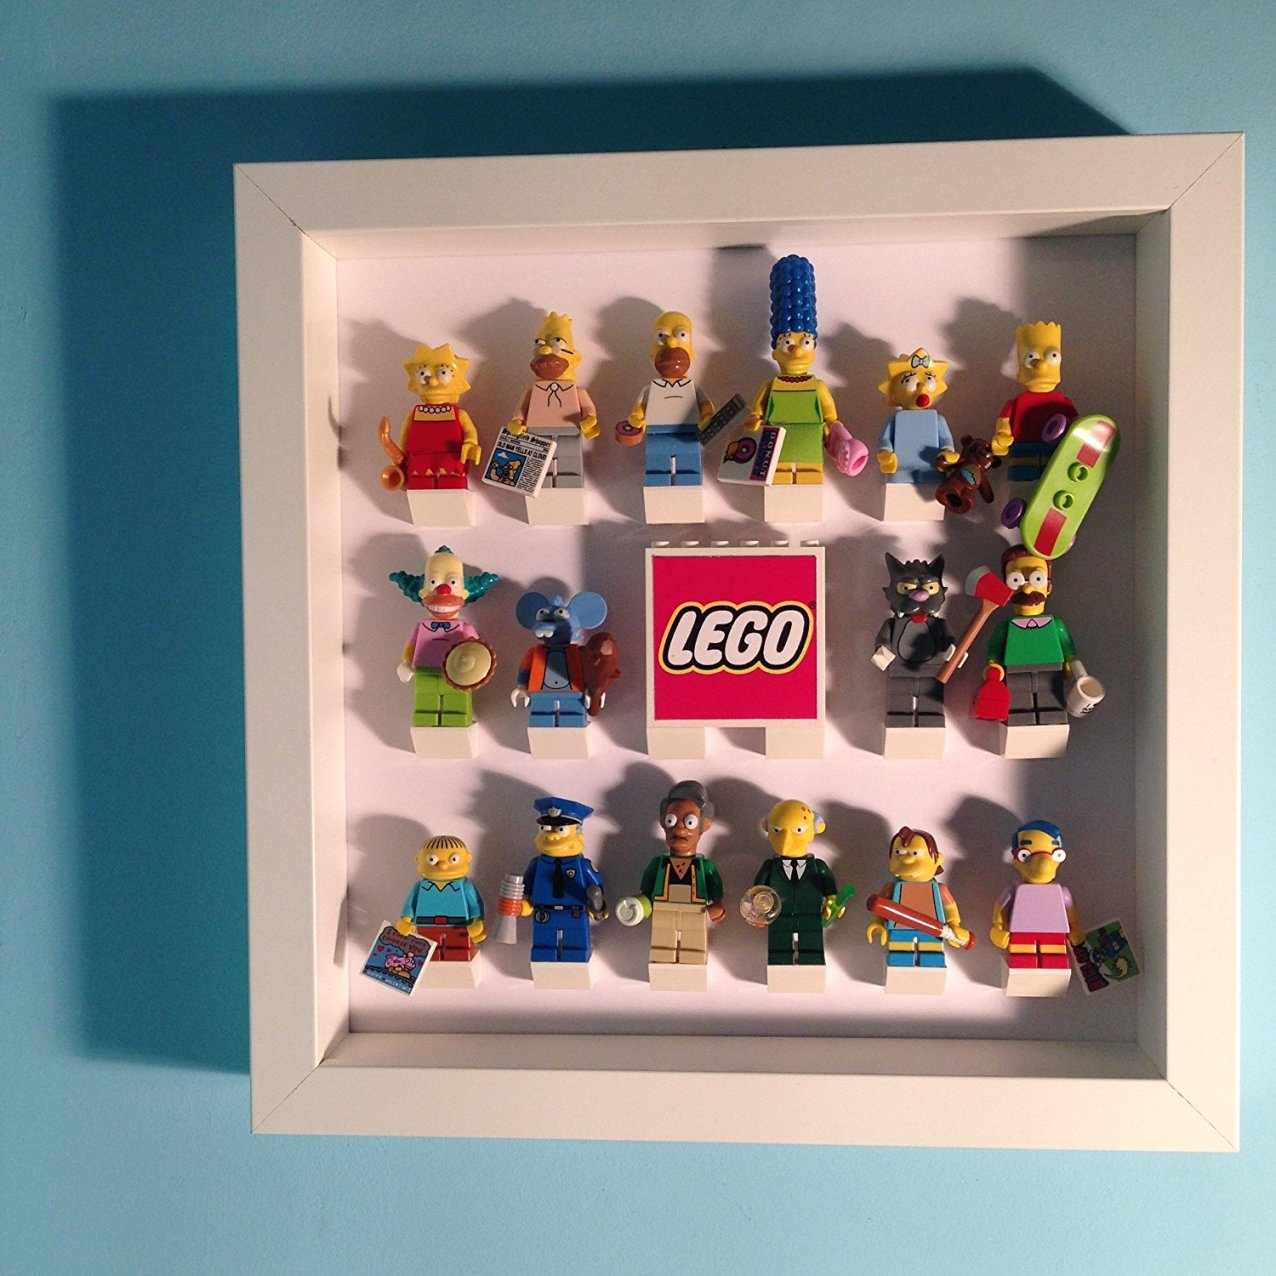 By Lego minifigure frame